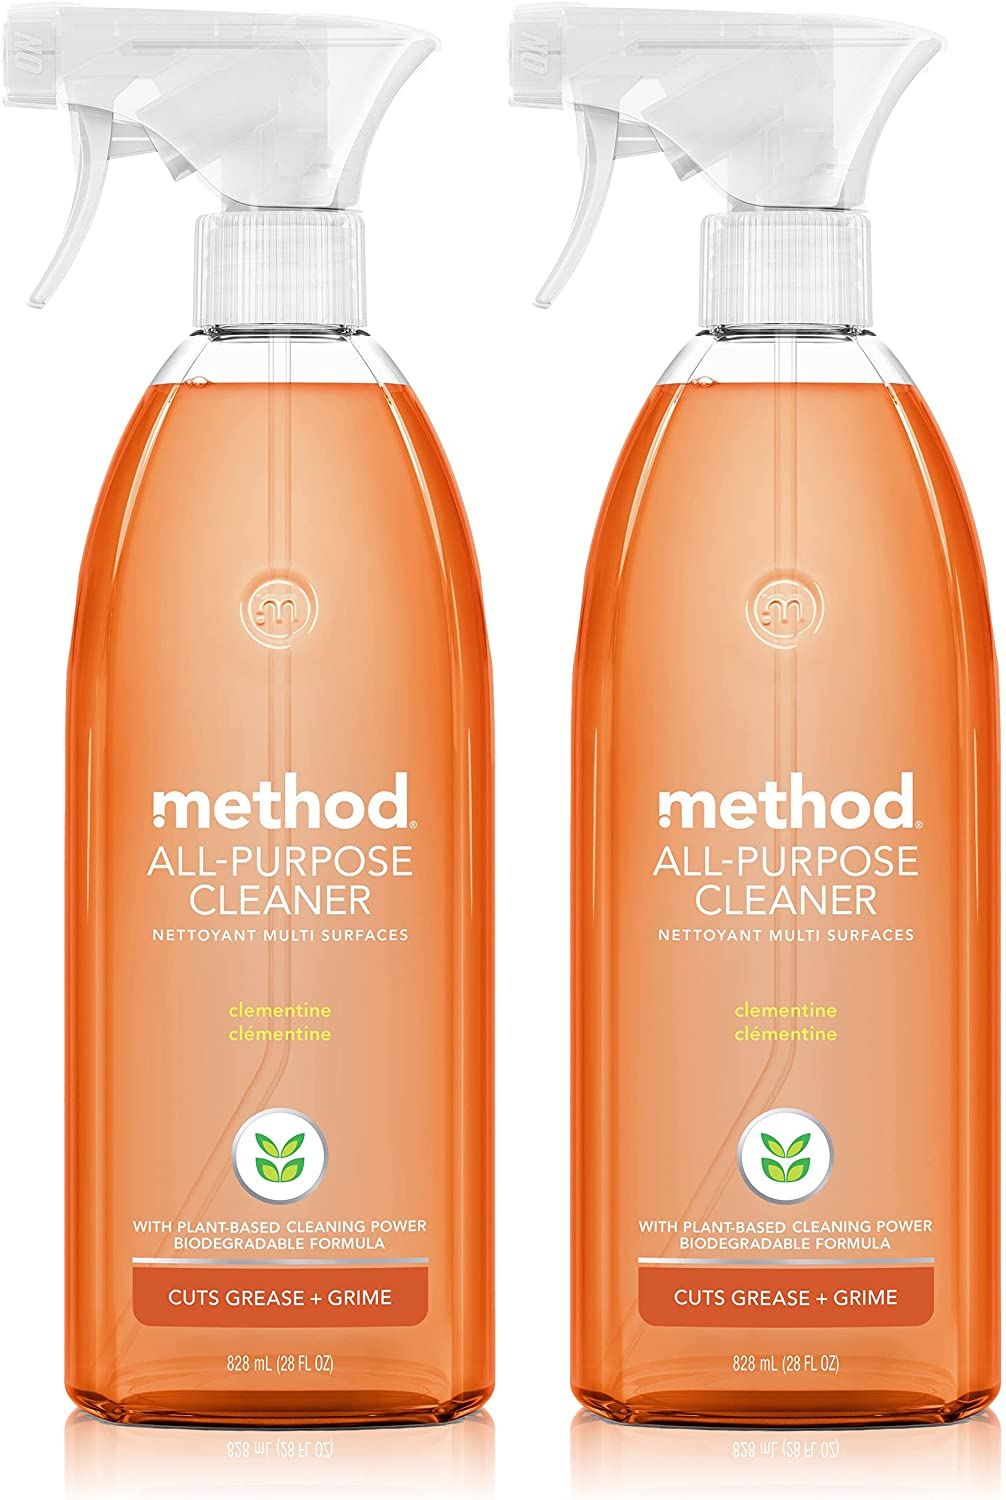 Method All-Purpose Cleaner Spray, Plant-Based and Biodegradable Formula Perfect for Most Counters, Tiles, Stone, and More, Clementine Scent, 828 ml Spray Bottles, 2 Pack, Packaging May Vary